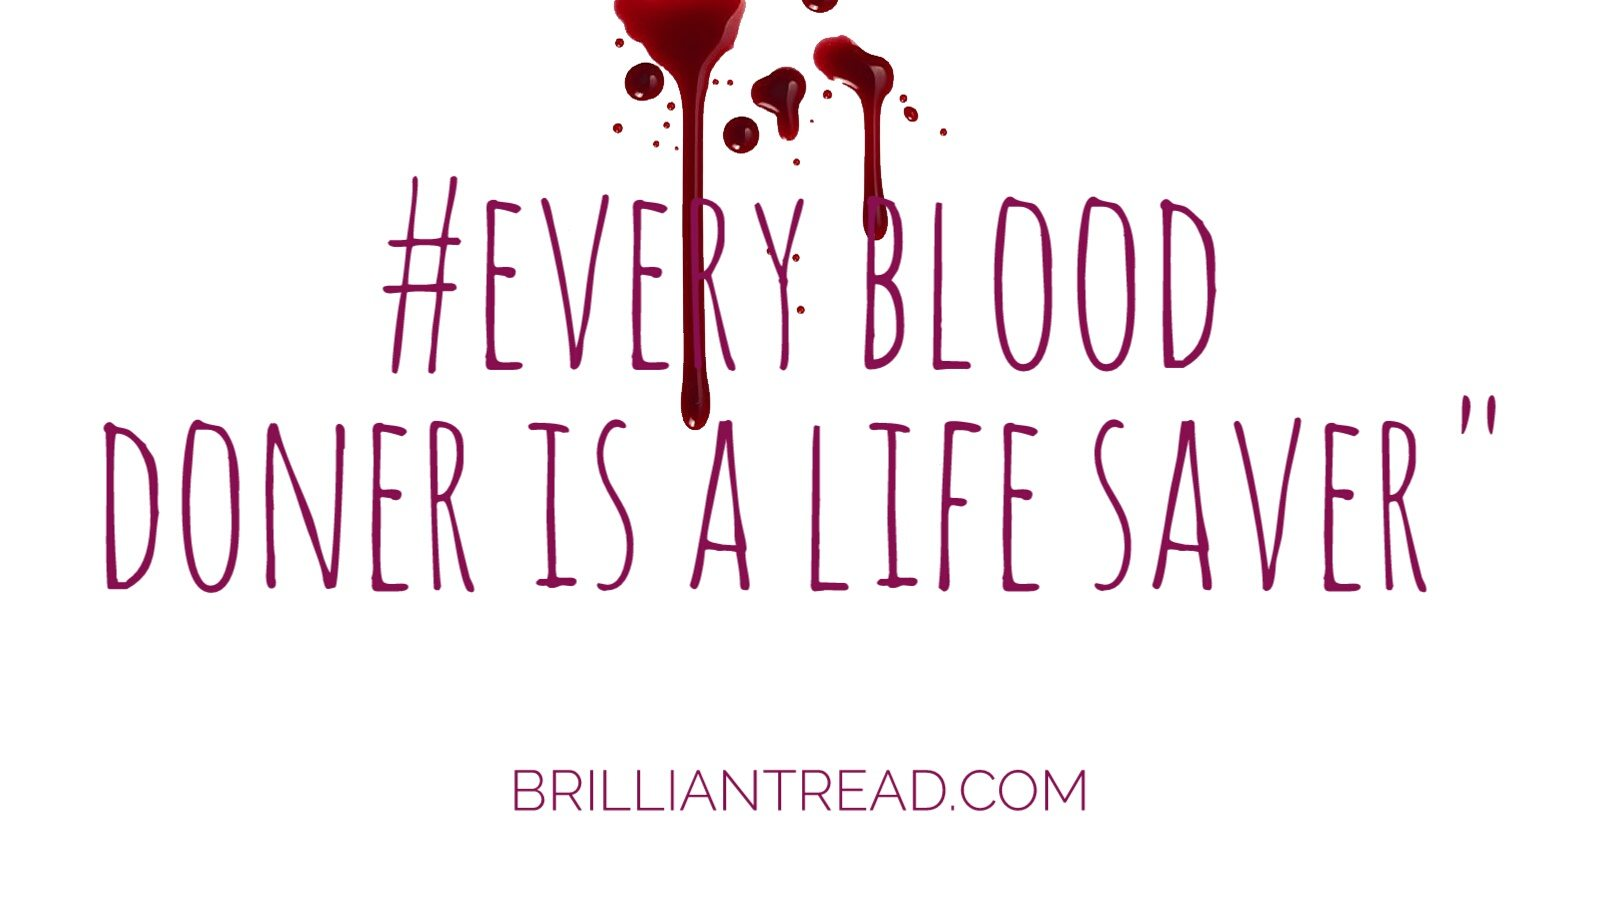 Quotes About Donating Cool Top 20 Blood Donation Quotes And Slogans  Brilliant Read